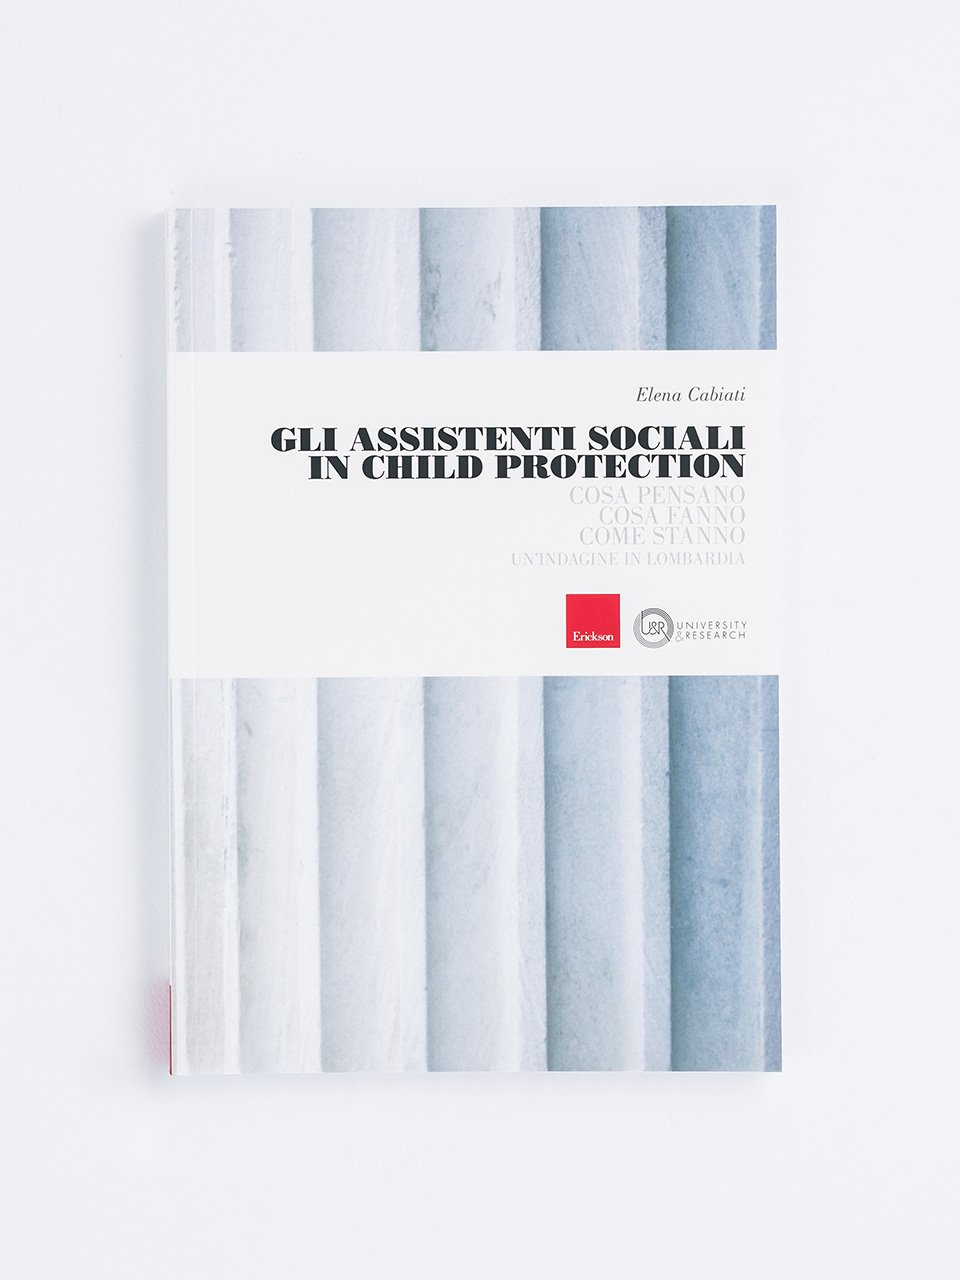 Gli assistenti sociali in Child Protection - Tutelandia - Libri - Erickson